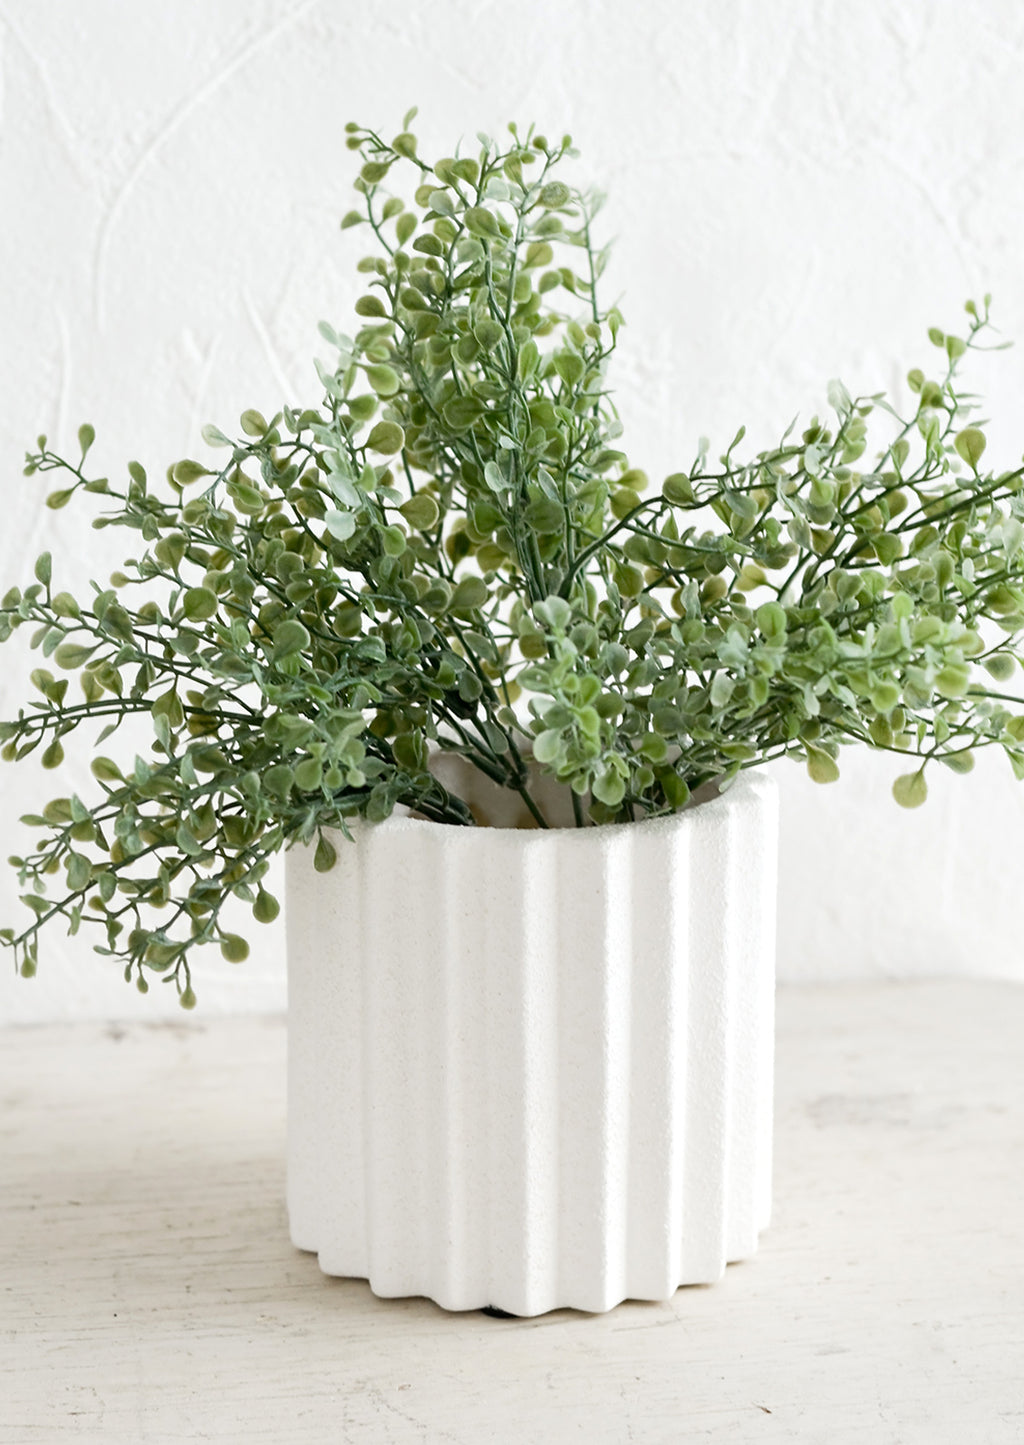 2: A geometric groove textured planter with plant.